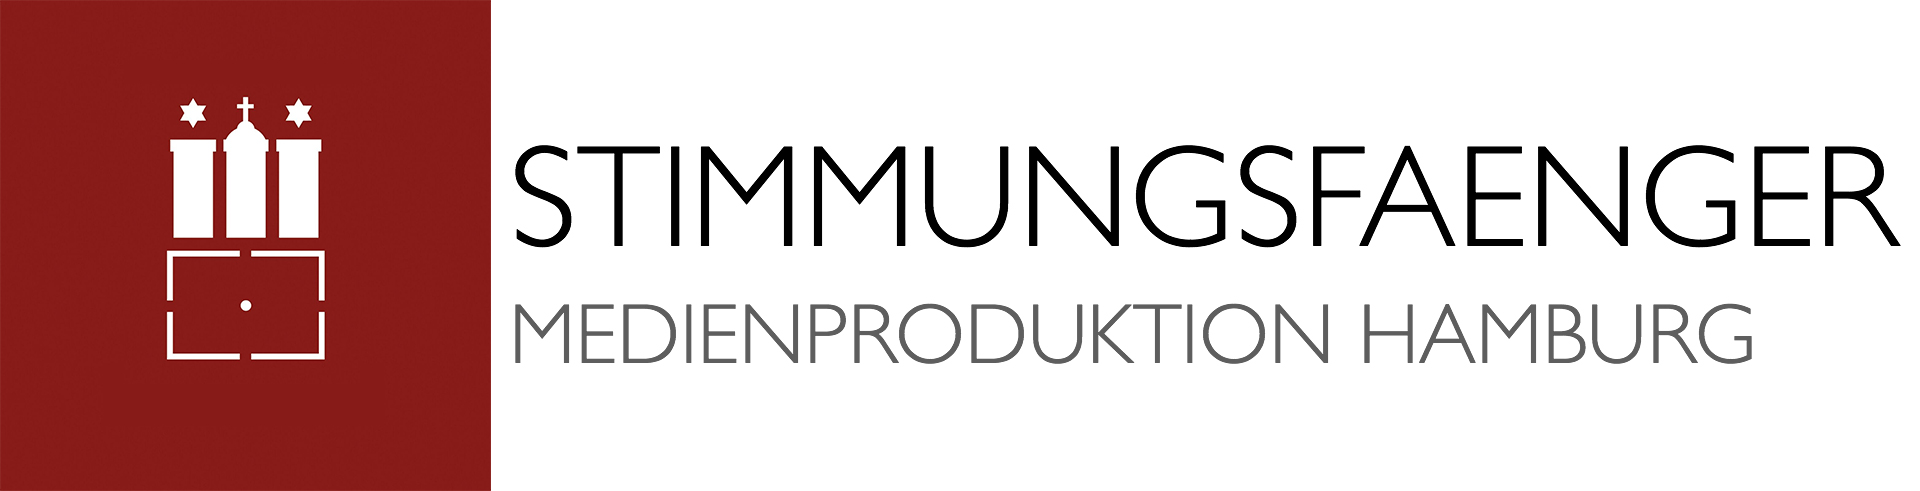 Medienproduktion  Hamburg